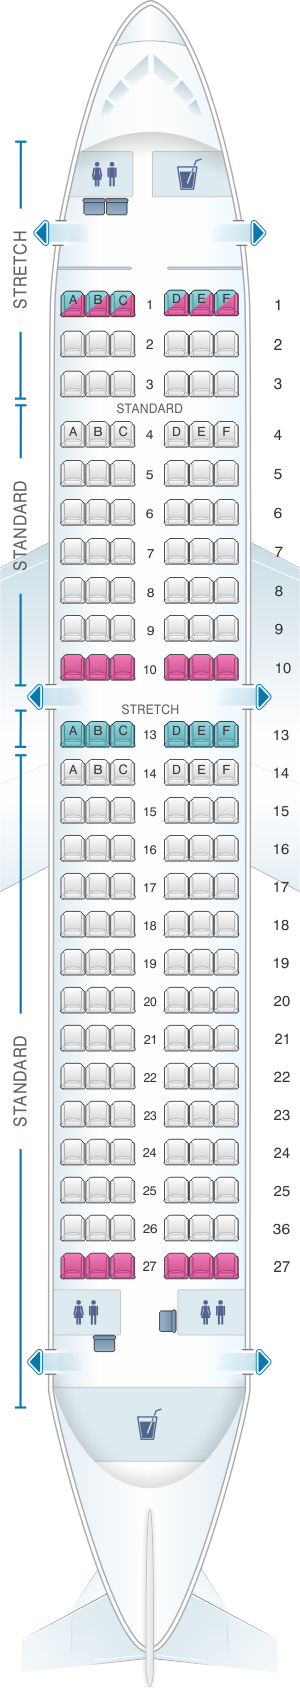 Seat map for Frontier Airlines Airbus A319 150pax